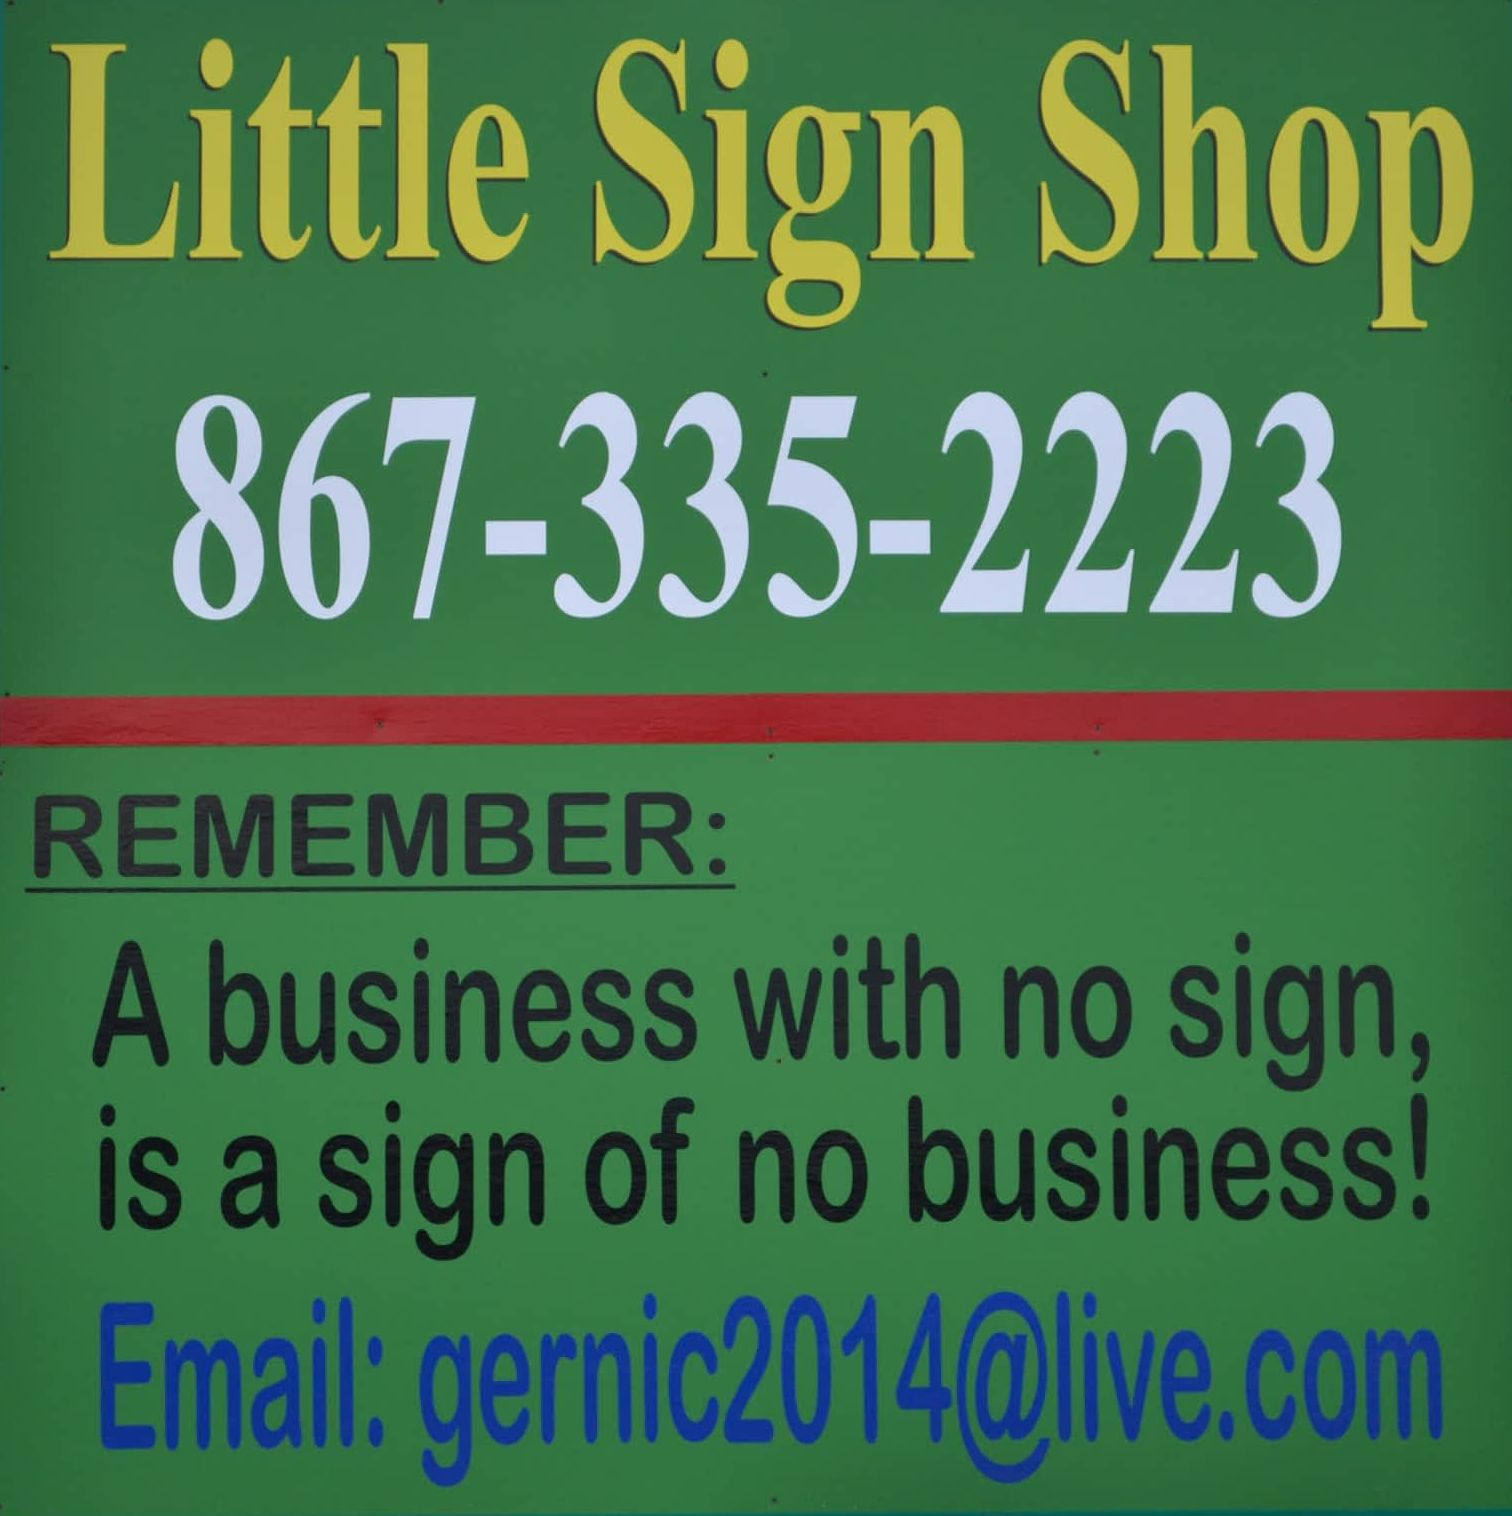 Little Sign Shop